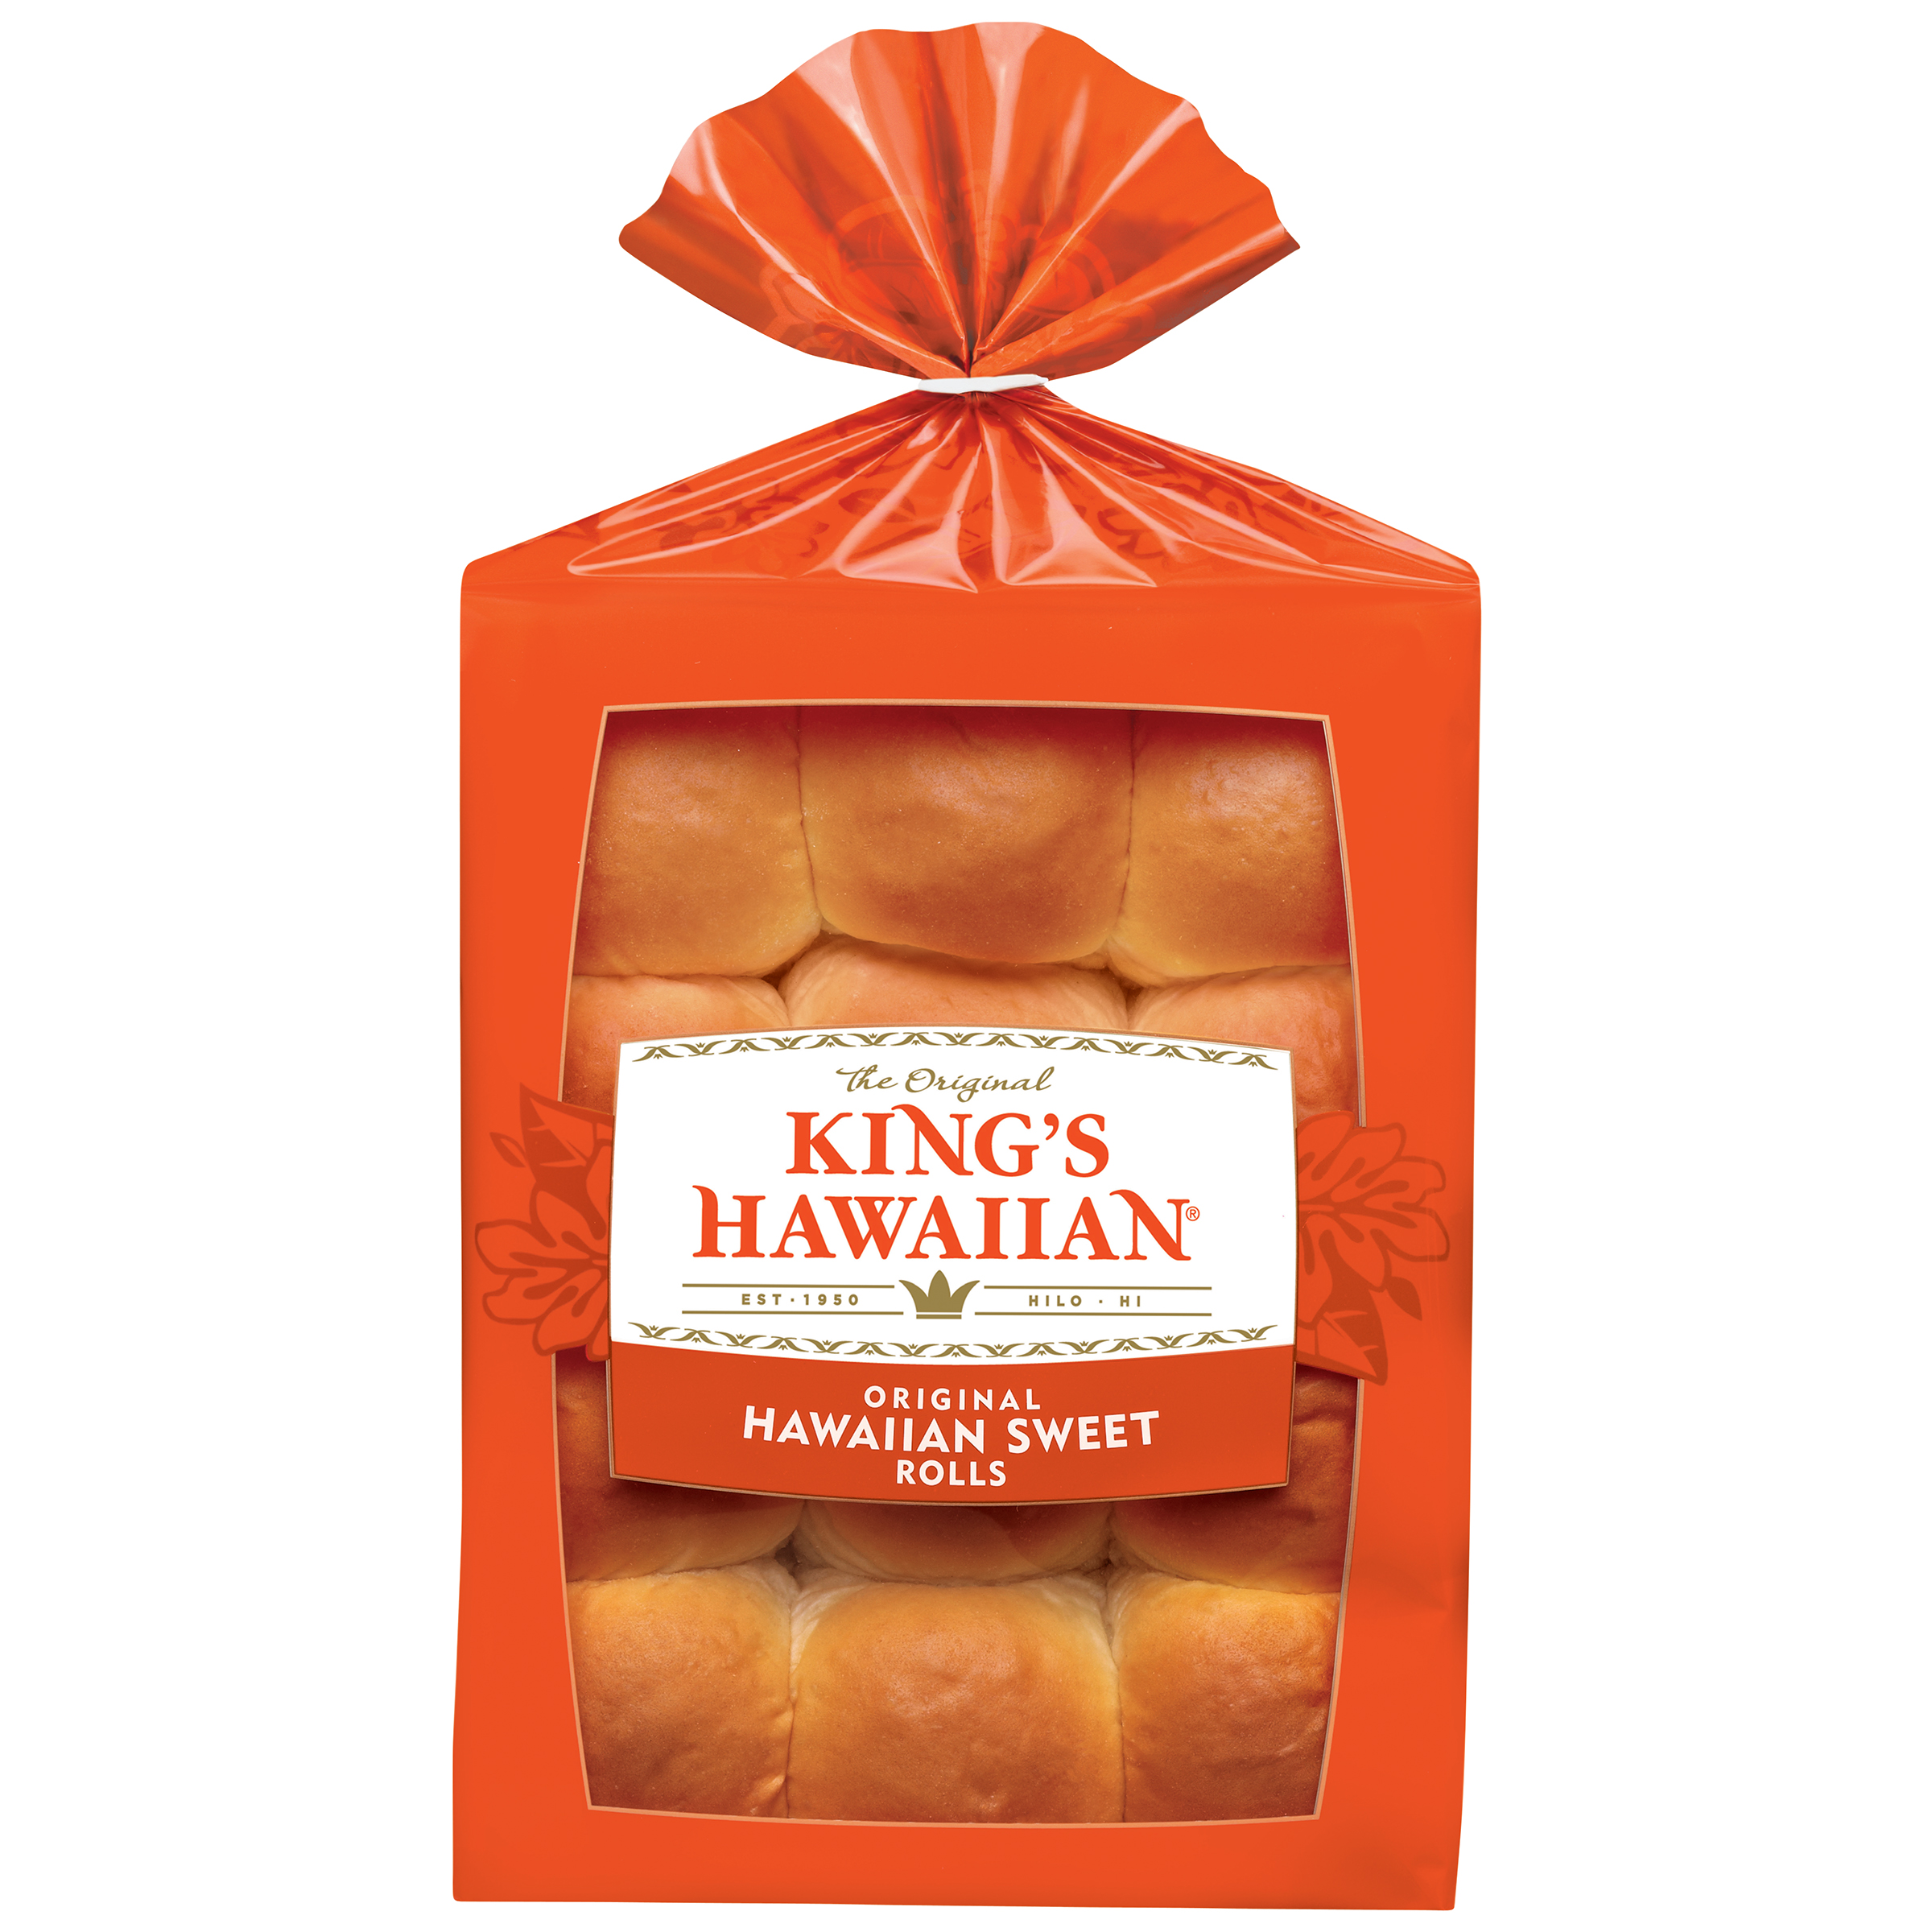 King's Hawaiian Original Hawaiian Sweet Rolls 12 ct Bag